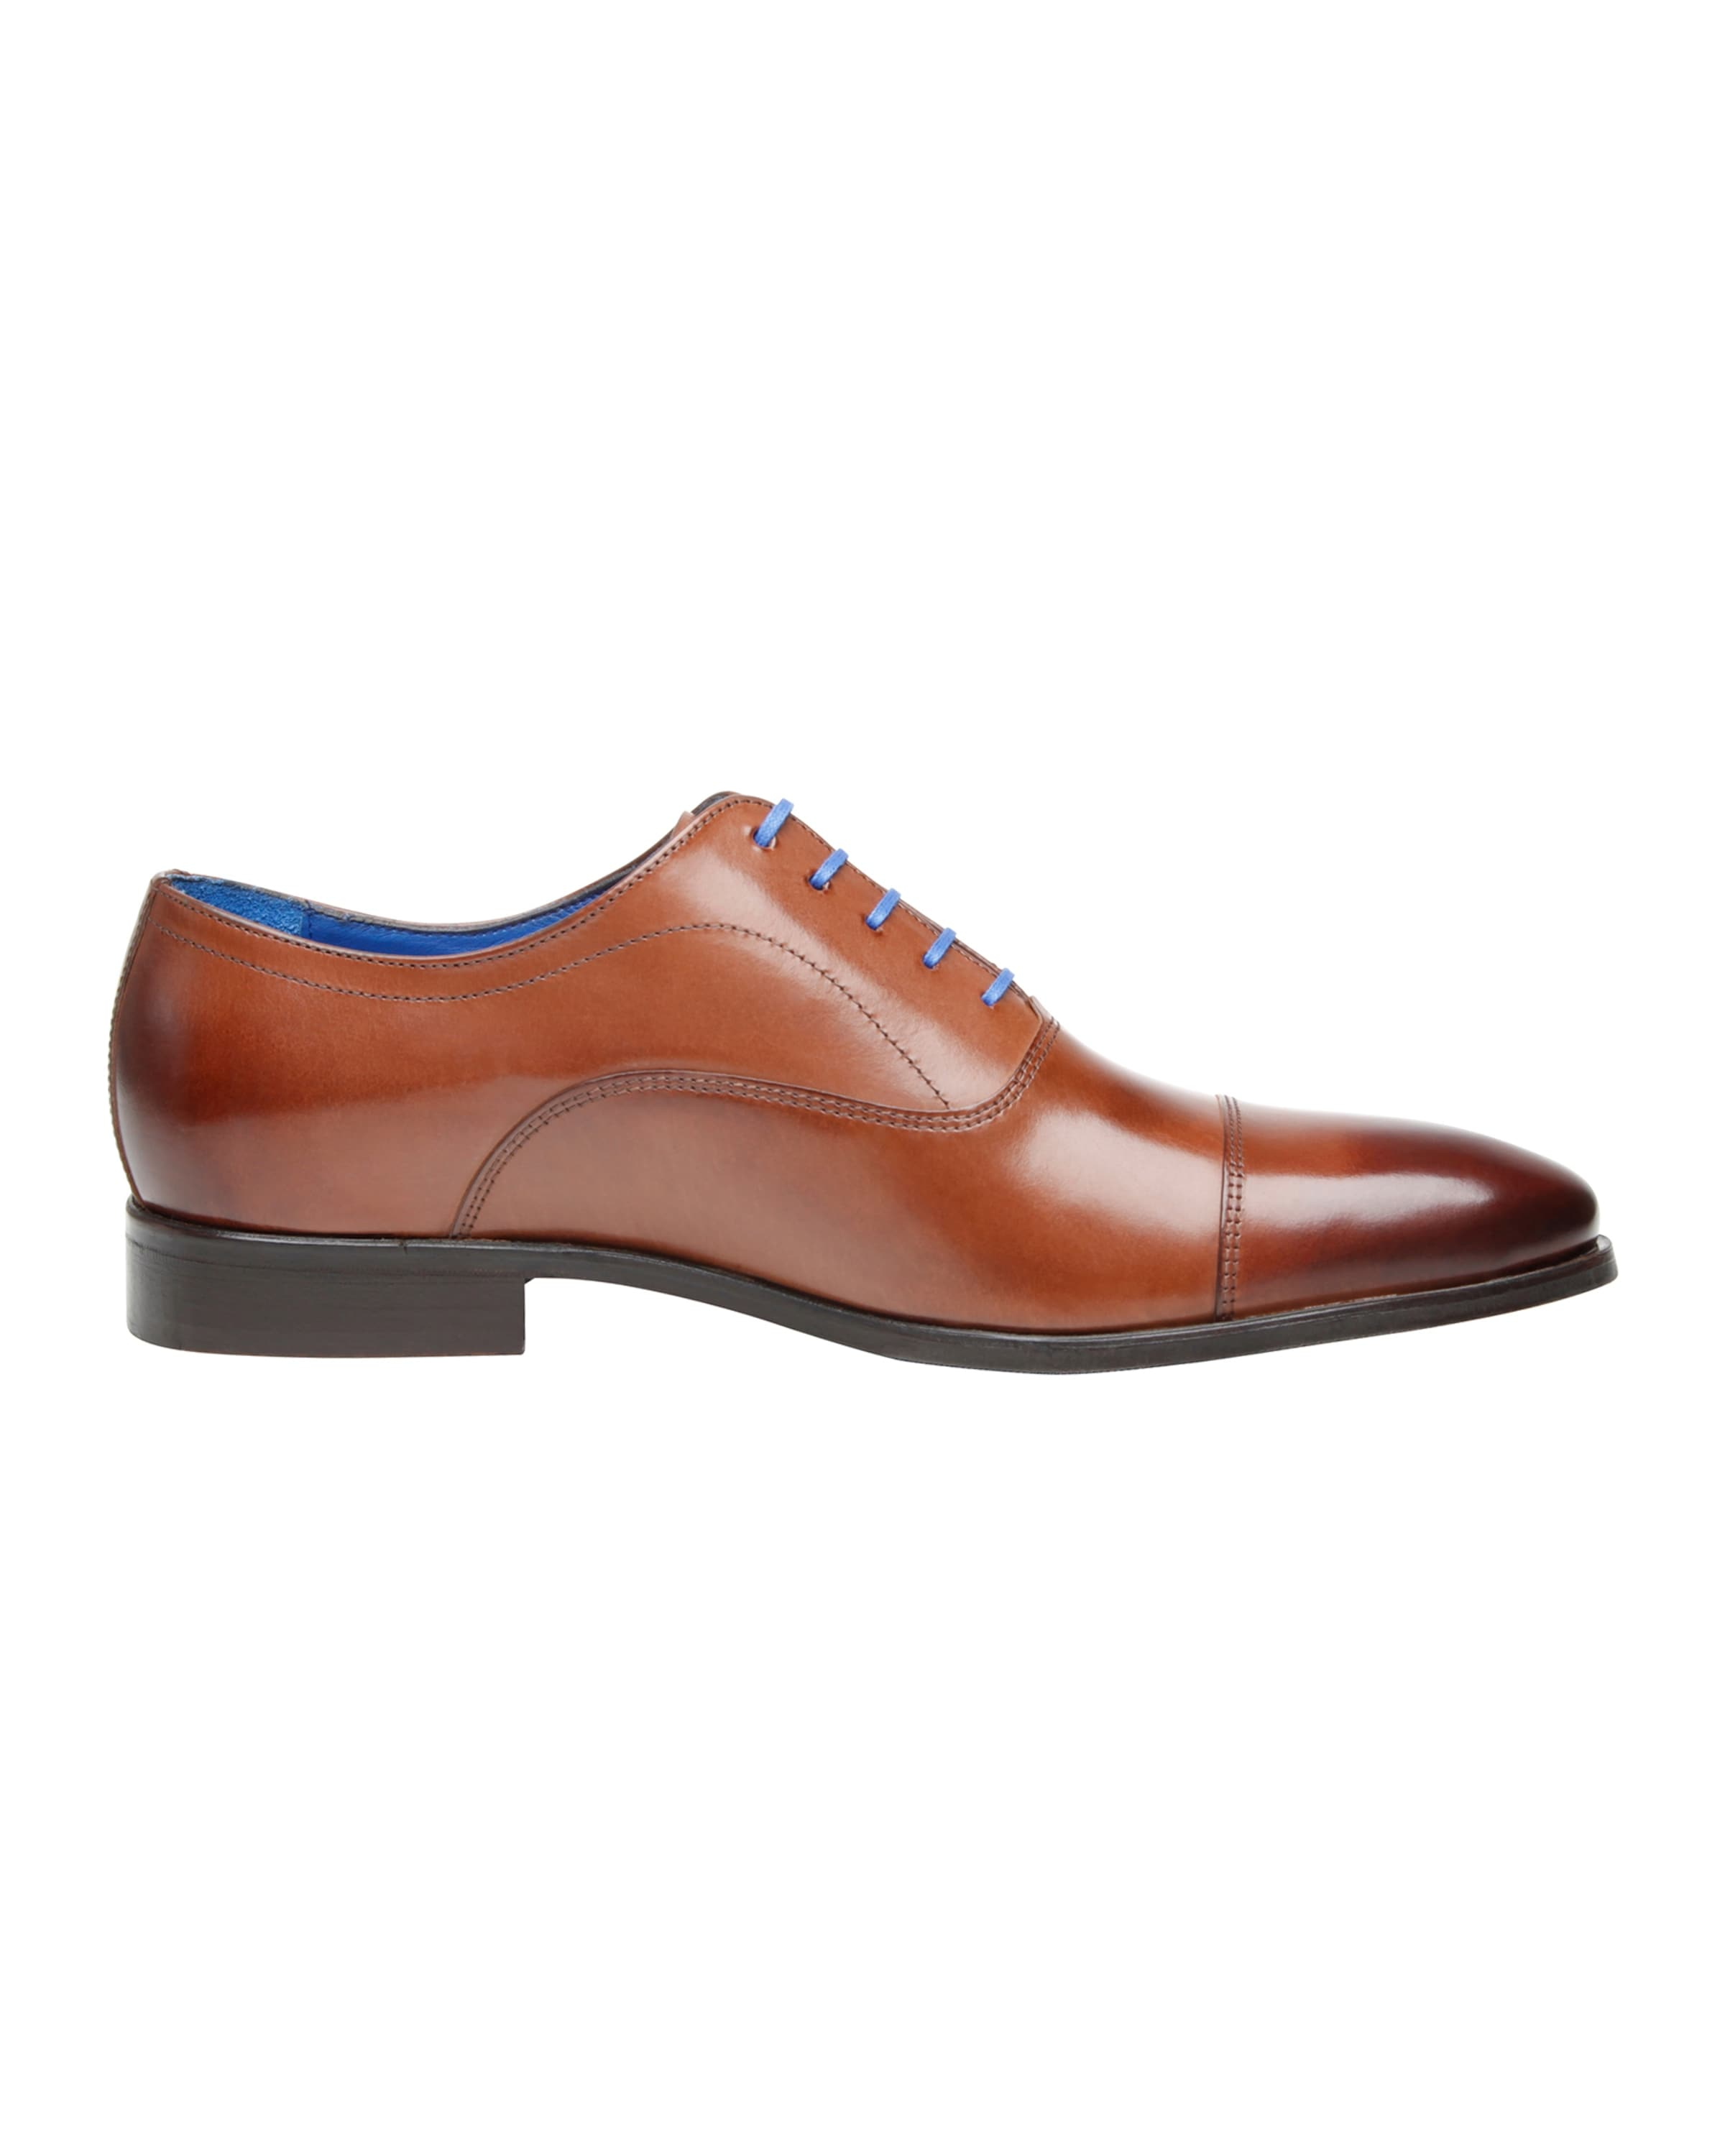 Bl' Businessschuhe In Cognac 'no5602 Shoepassion pSMzVGqU